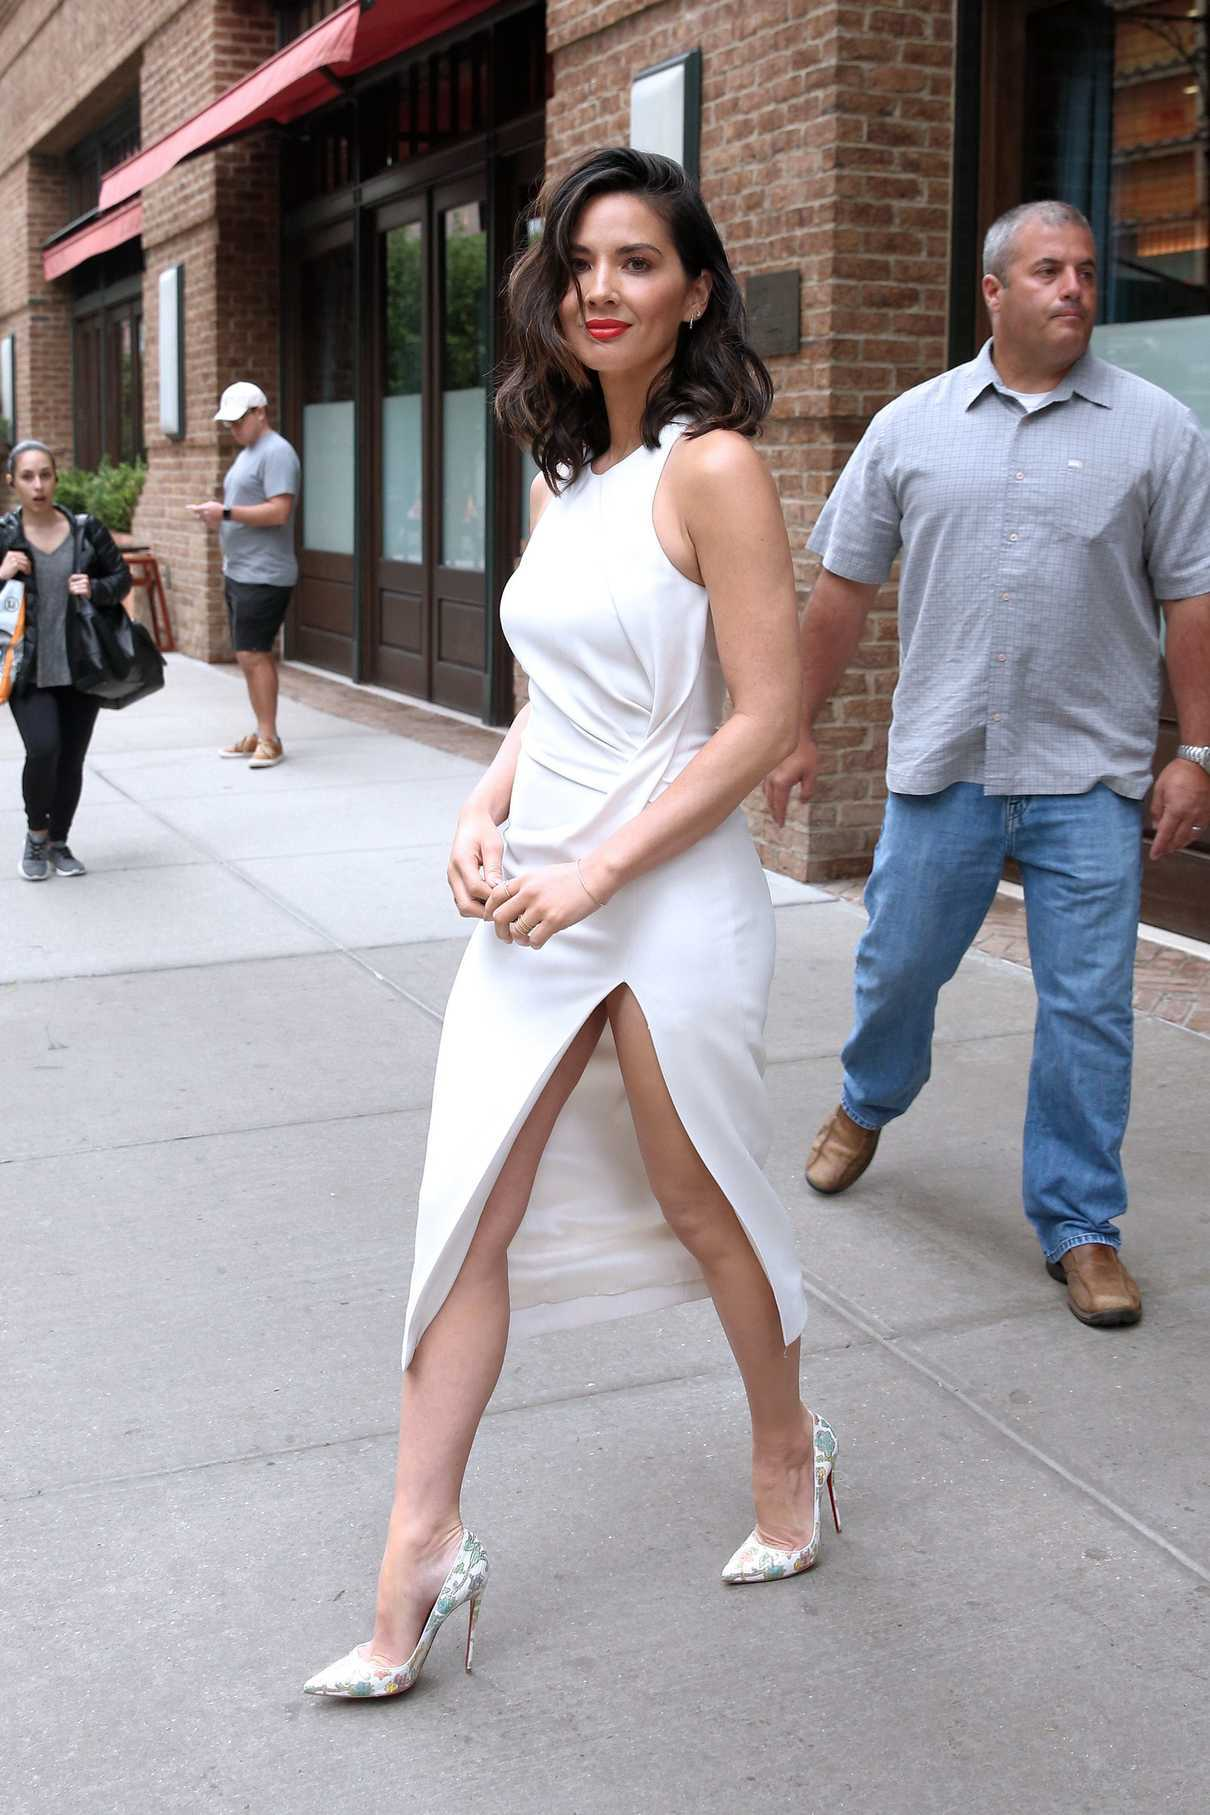 olivia munn wears a cream dress out in new york city 06 16 2017 lacelebs co. Black Bedroom Furniture Sets. Home Design Ideas